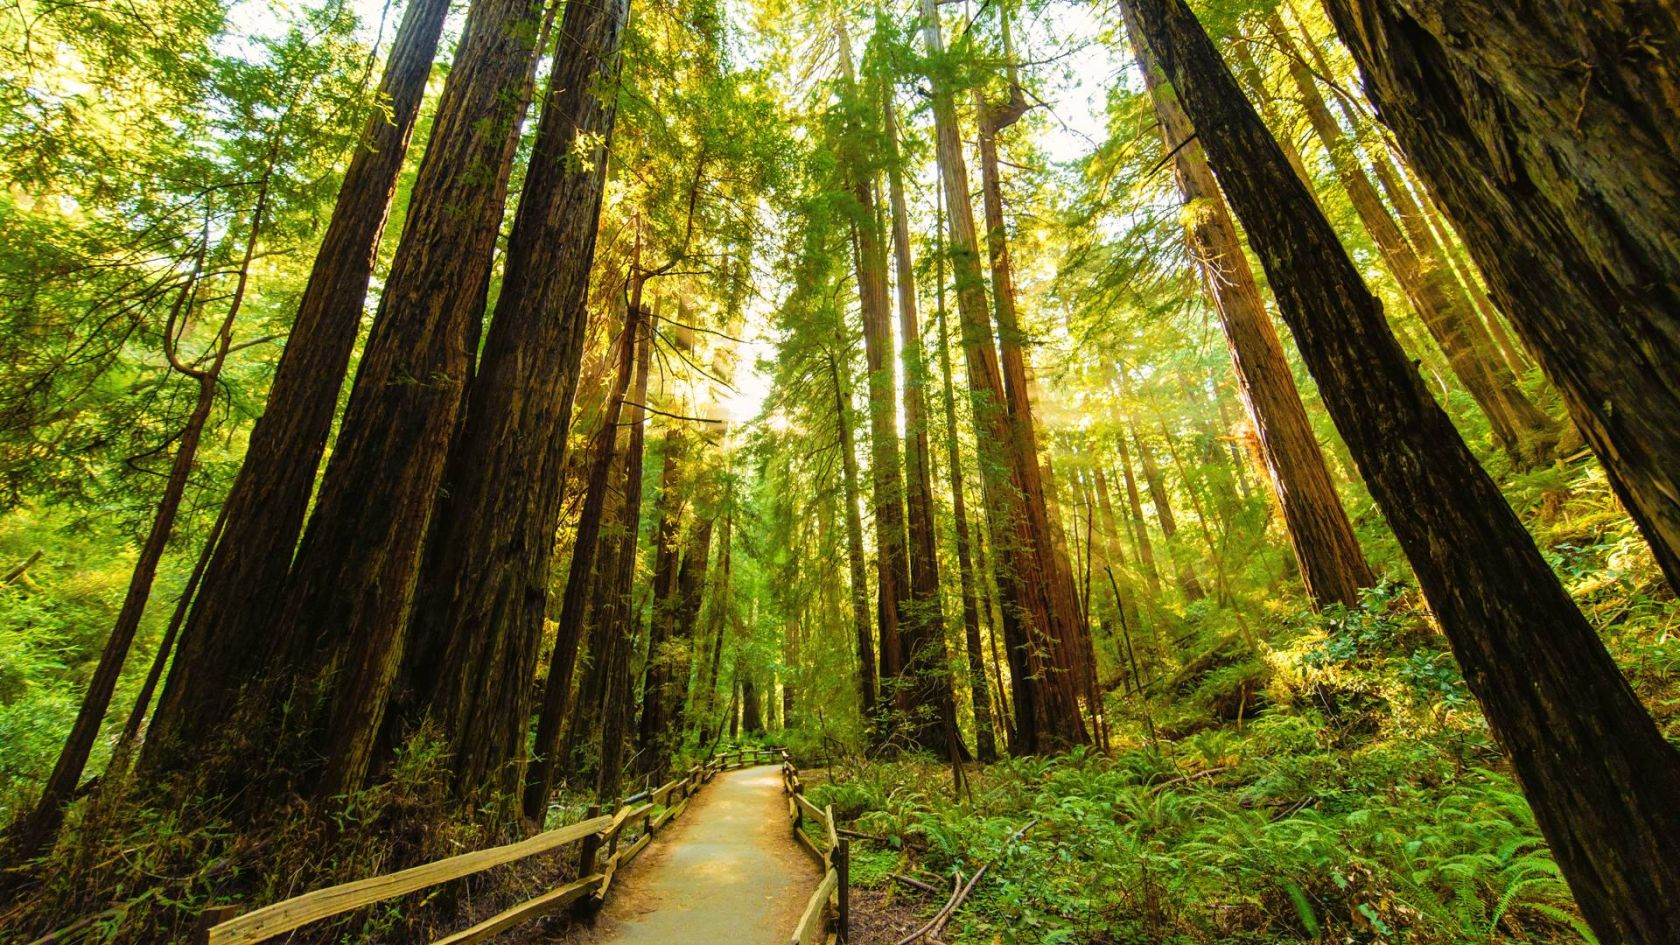 How to get to muir woods without a car